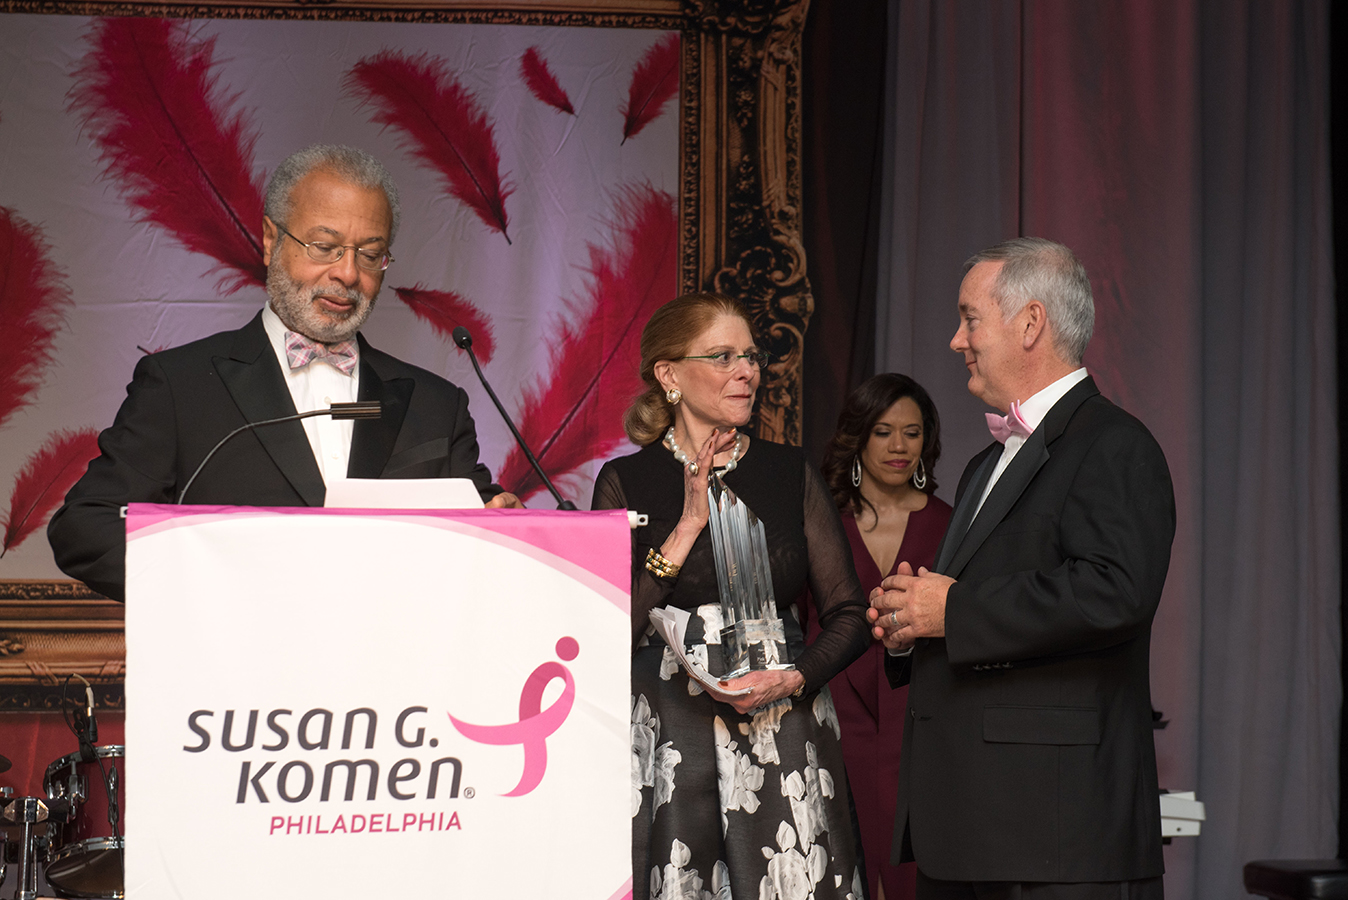 Susan G. Komen awards presentation